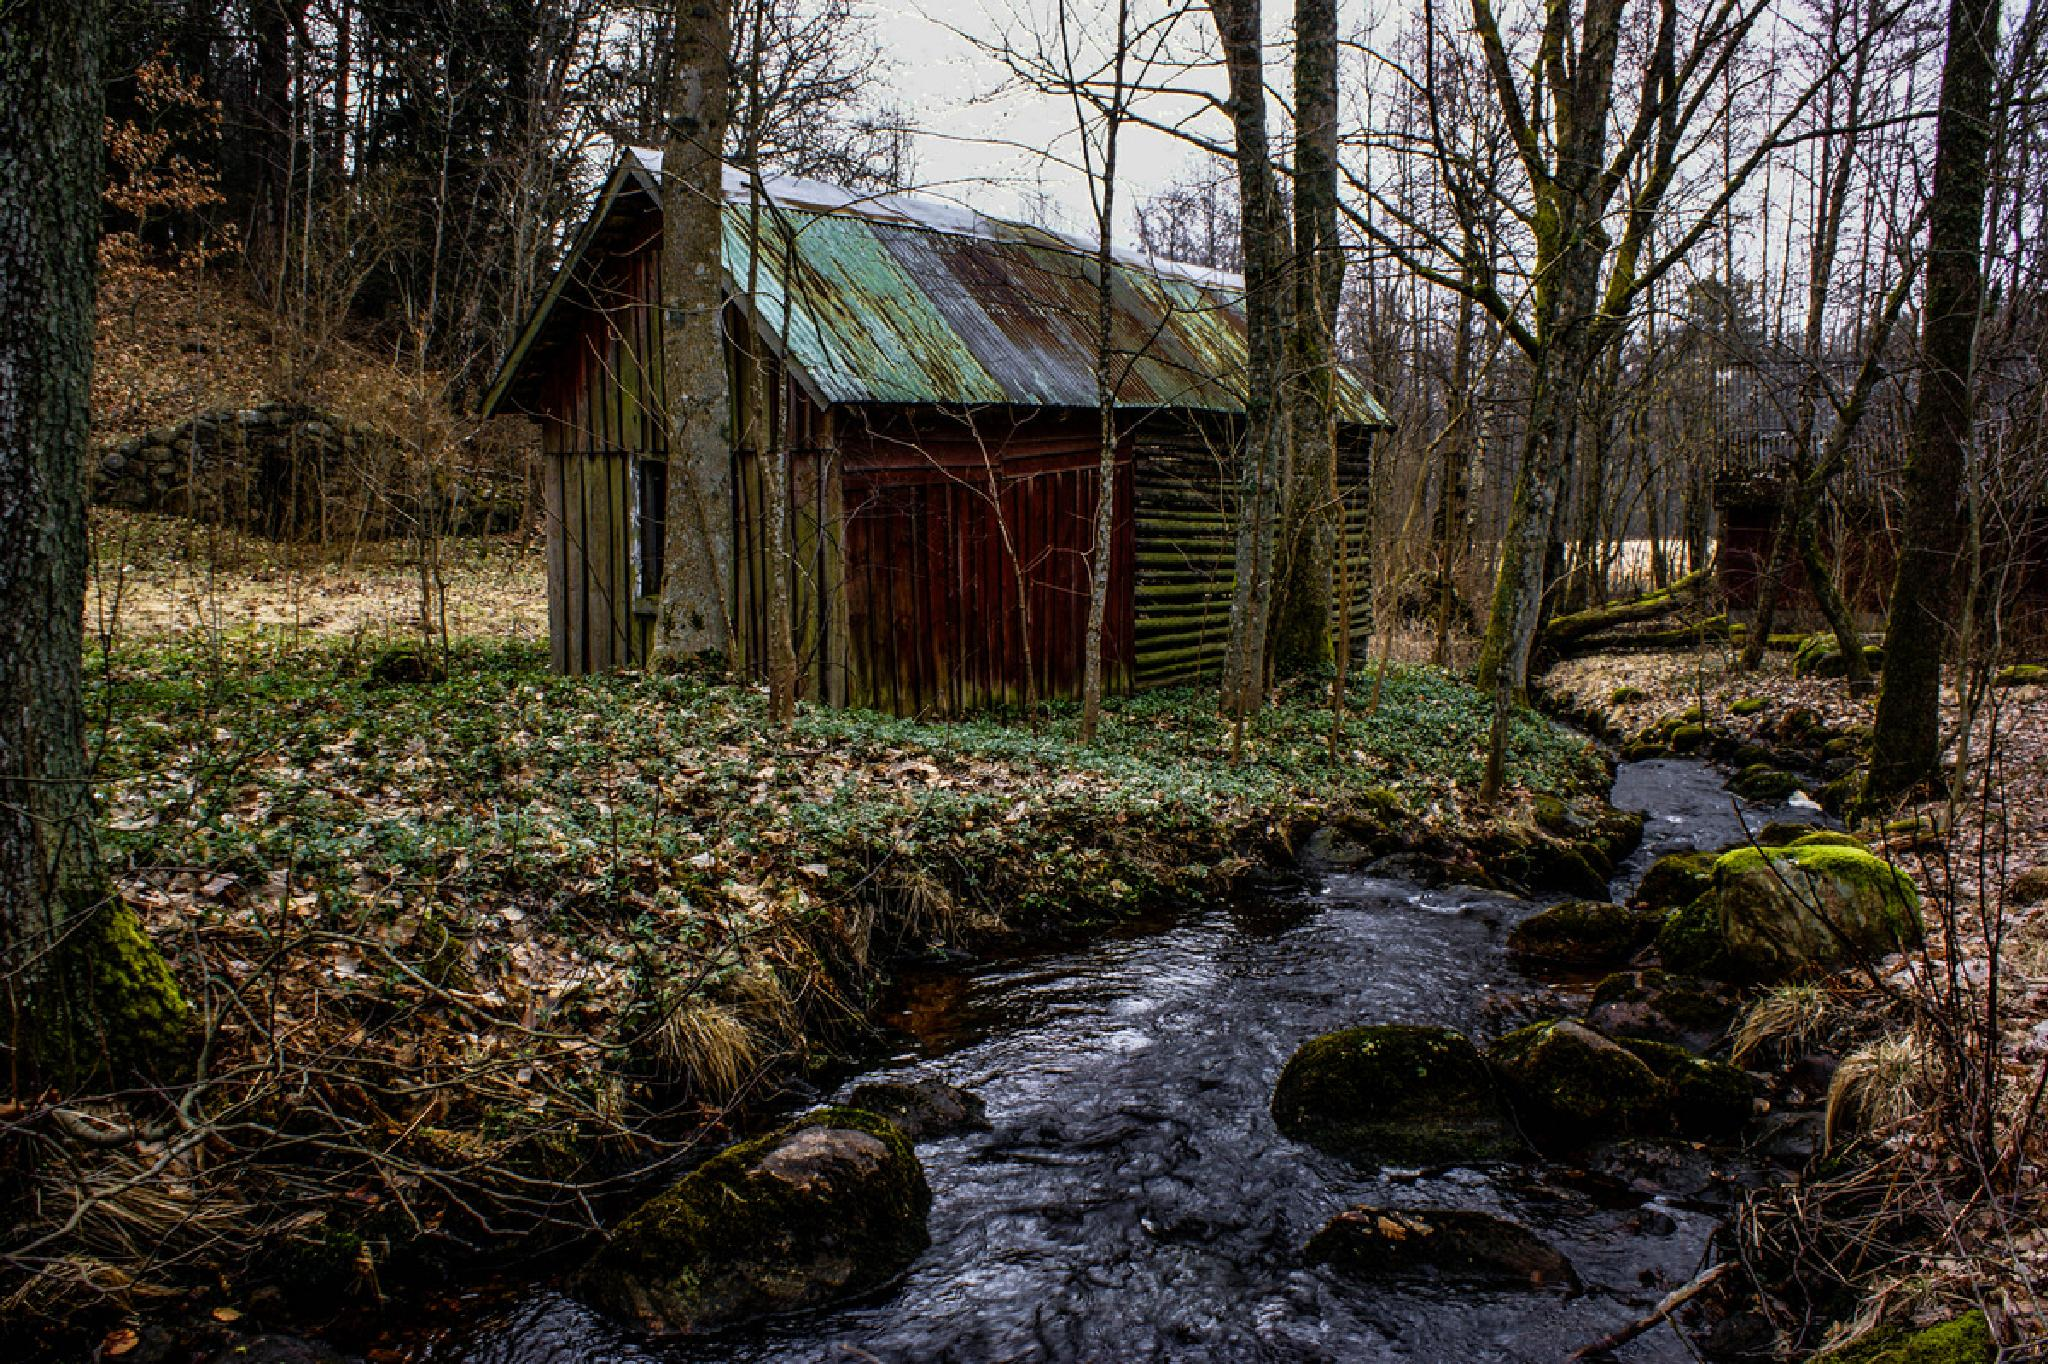 Forgotten house in the forrest by Jane.lindbladh